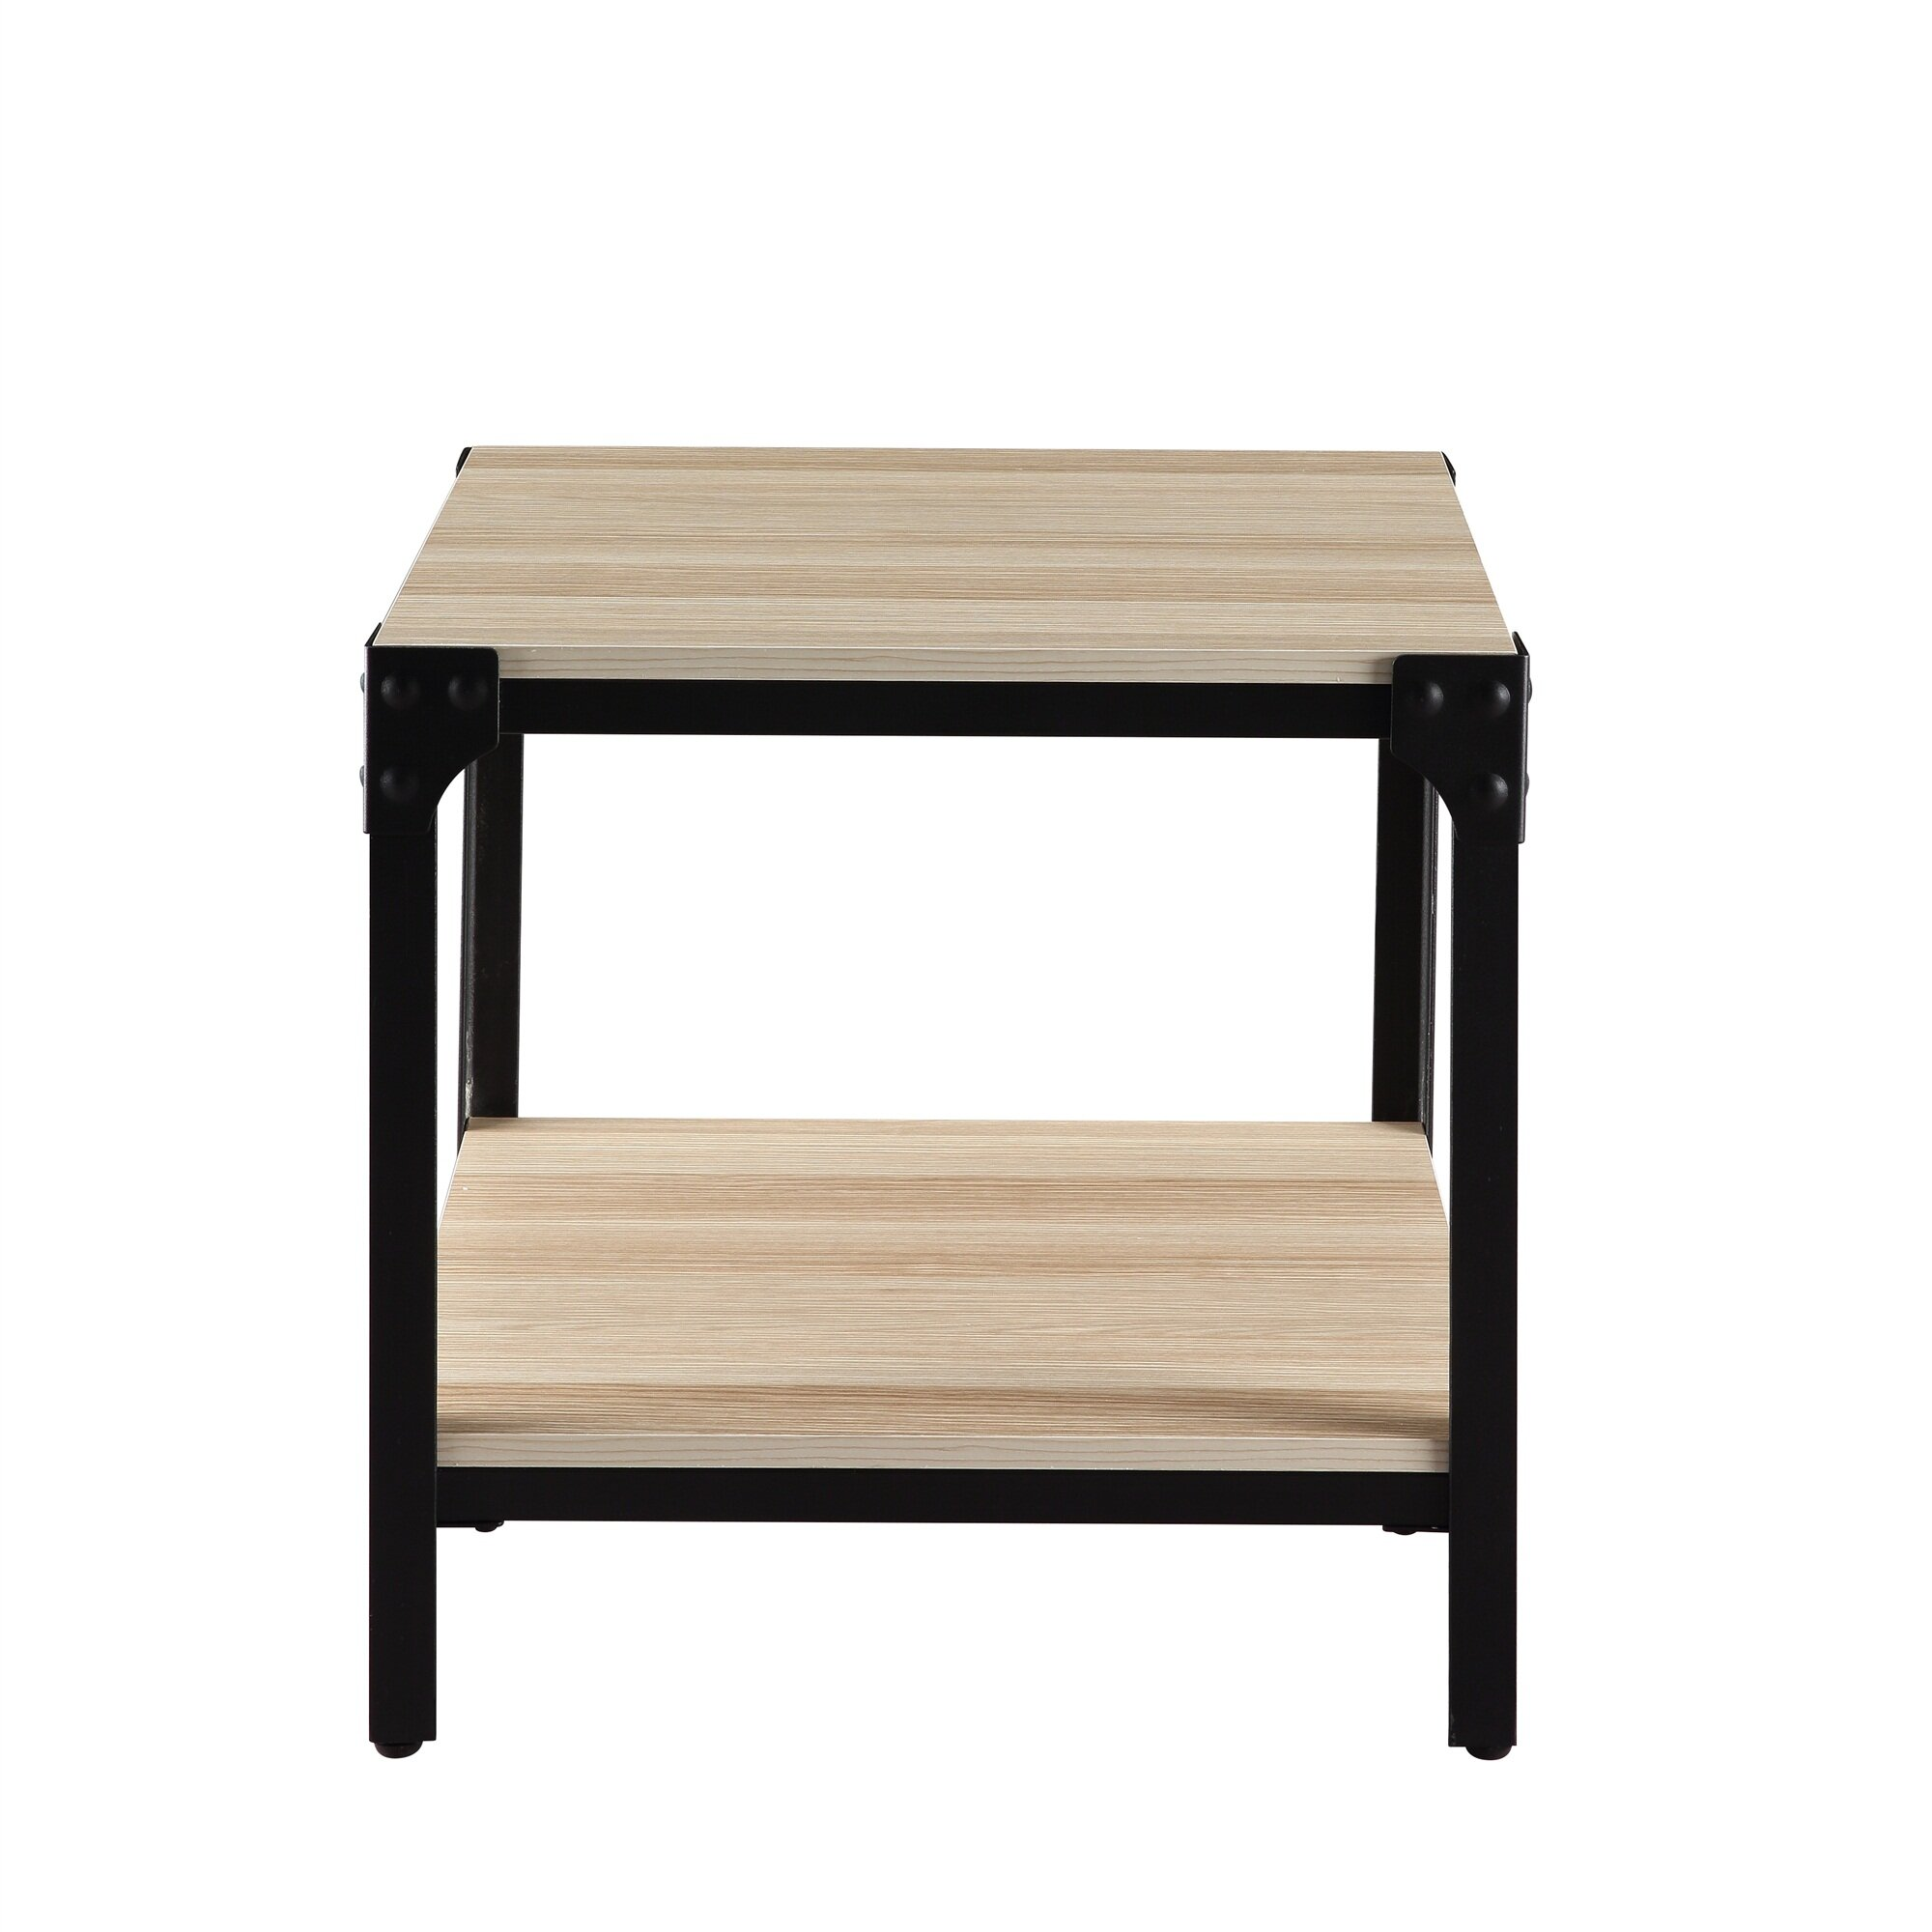 Rustic Farmhouse Square Wood Side End Accent Table With Storage Shelf For  Living Room, Bedroom, Easy Assembly